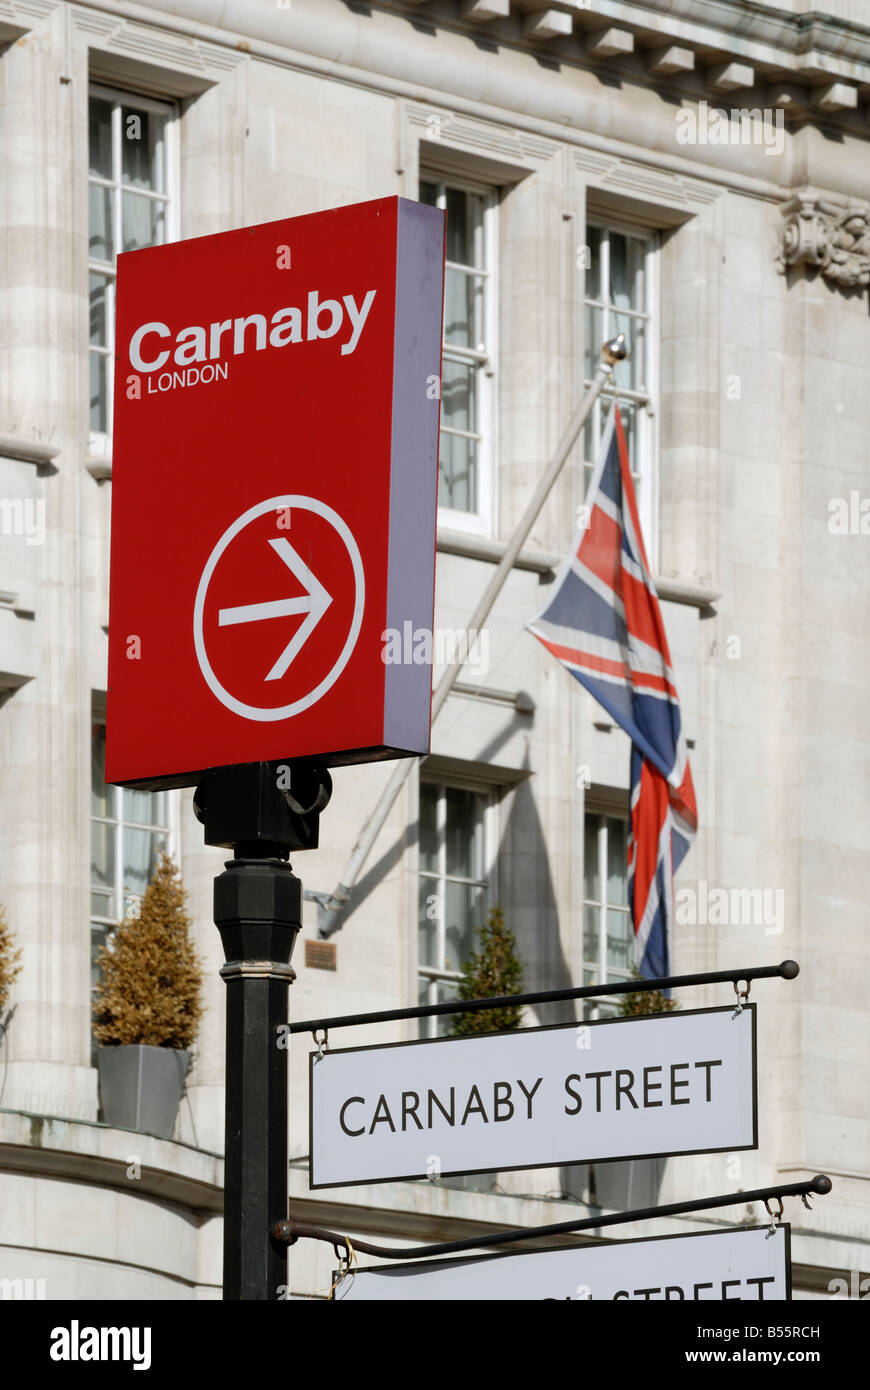 Carnaby Street sign, London - Stock Image